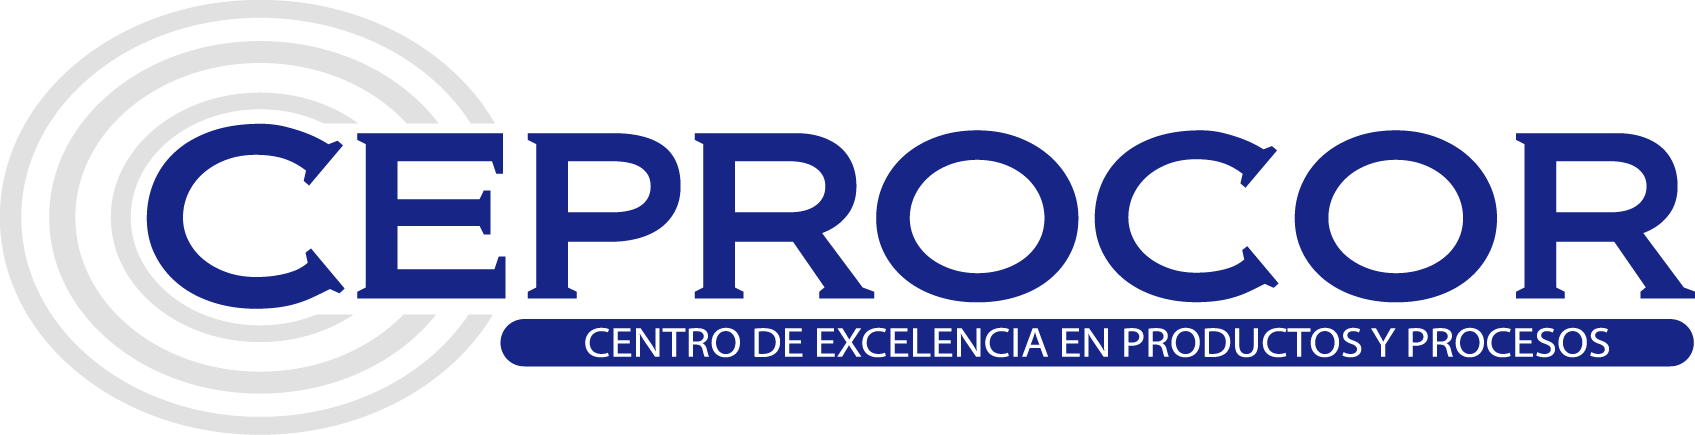 CEPROCOR Logo